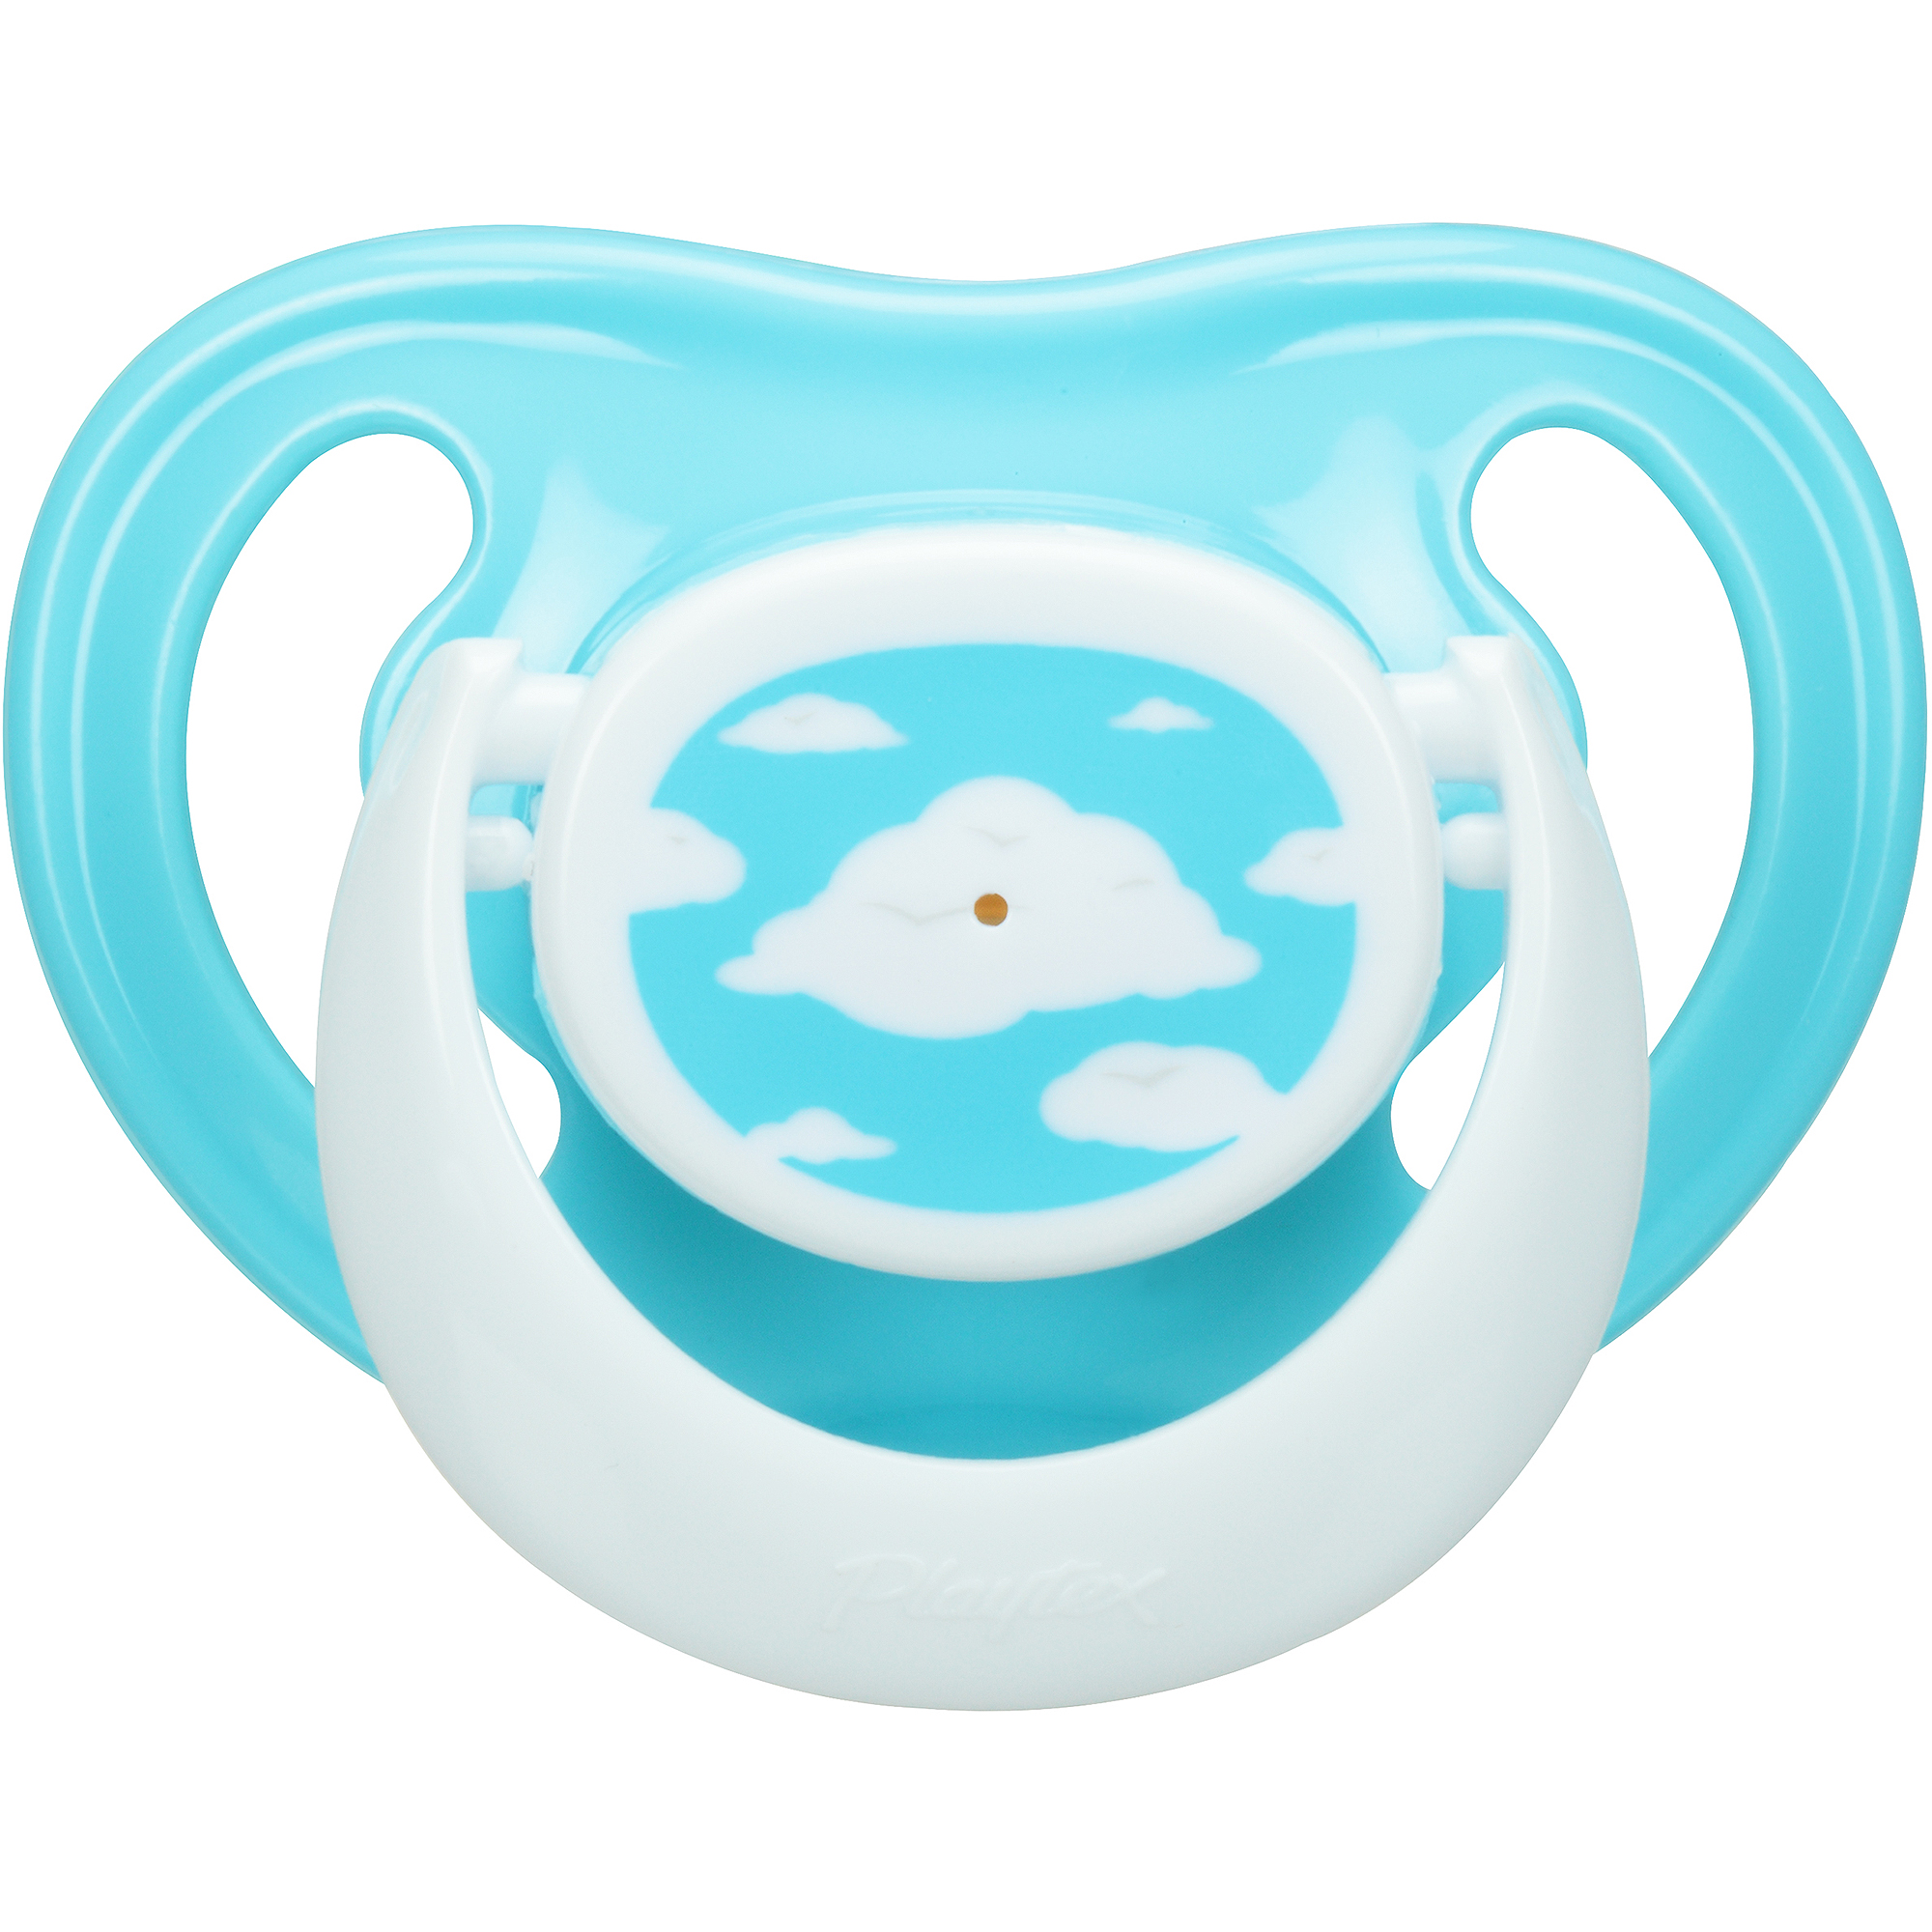 Playtex Ortho-Pro Pacifier, Newborn (0-6), 2-Pack, BPA-Free (Design May Vary)